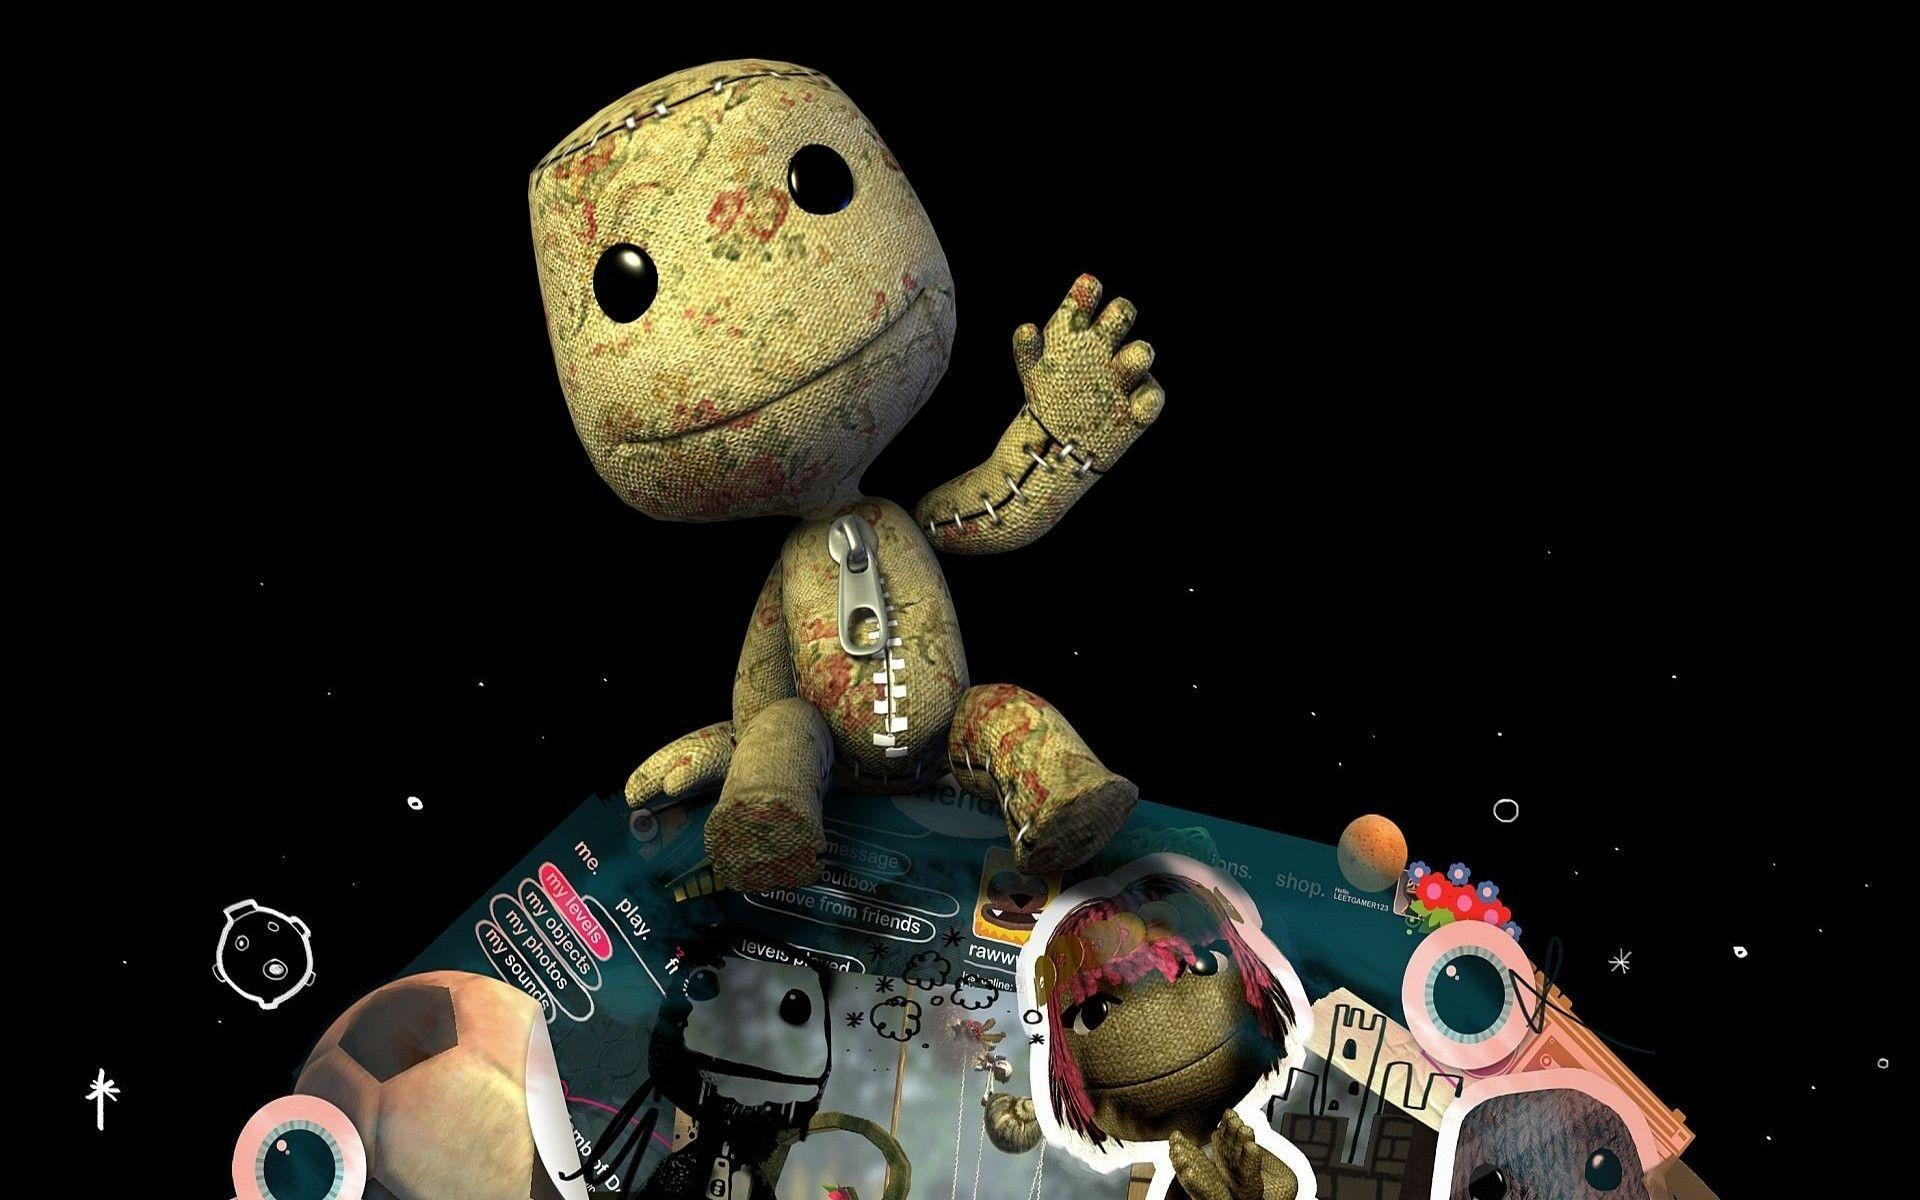 Little Big Planet Ps Vita wallpapers